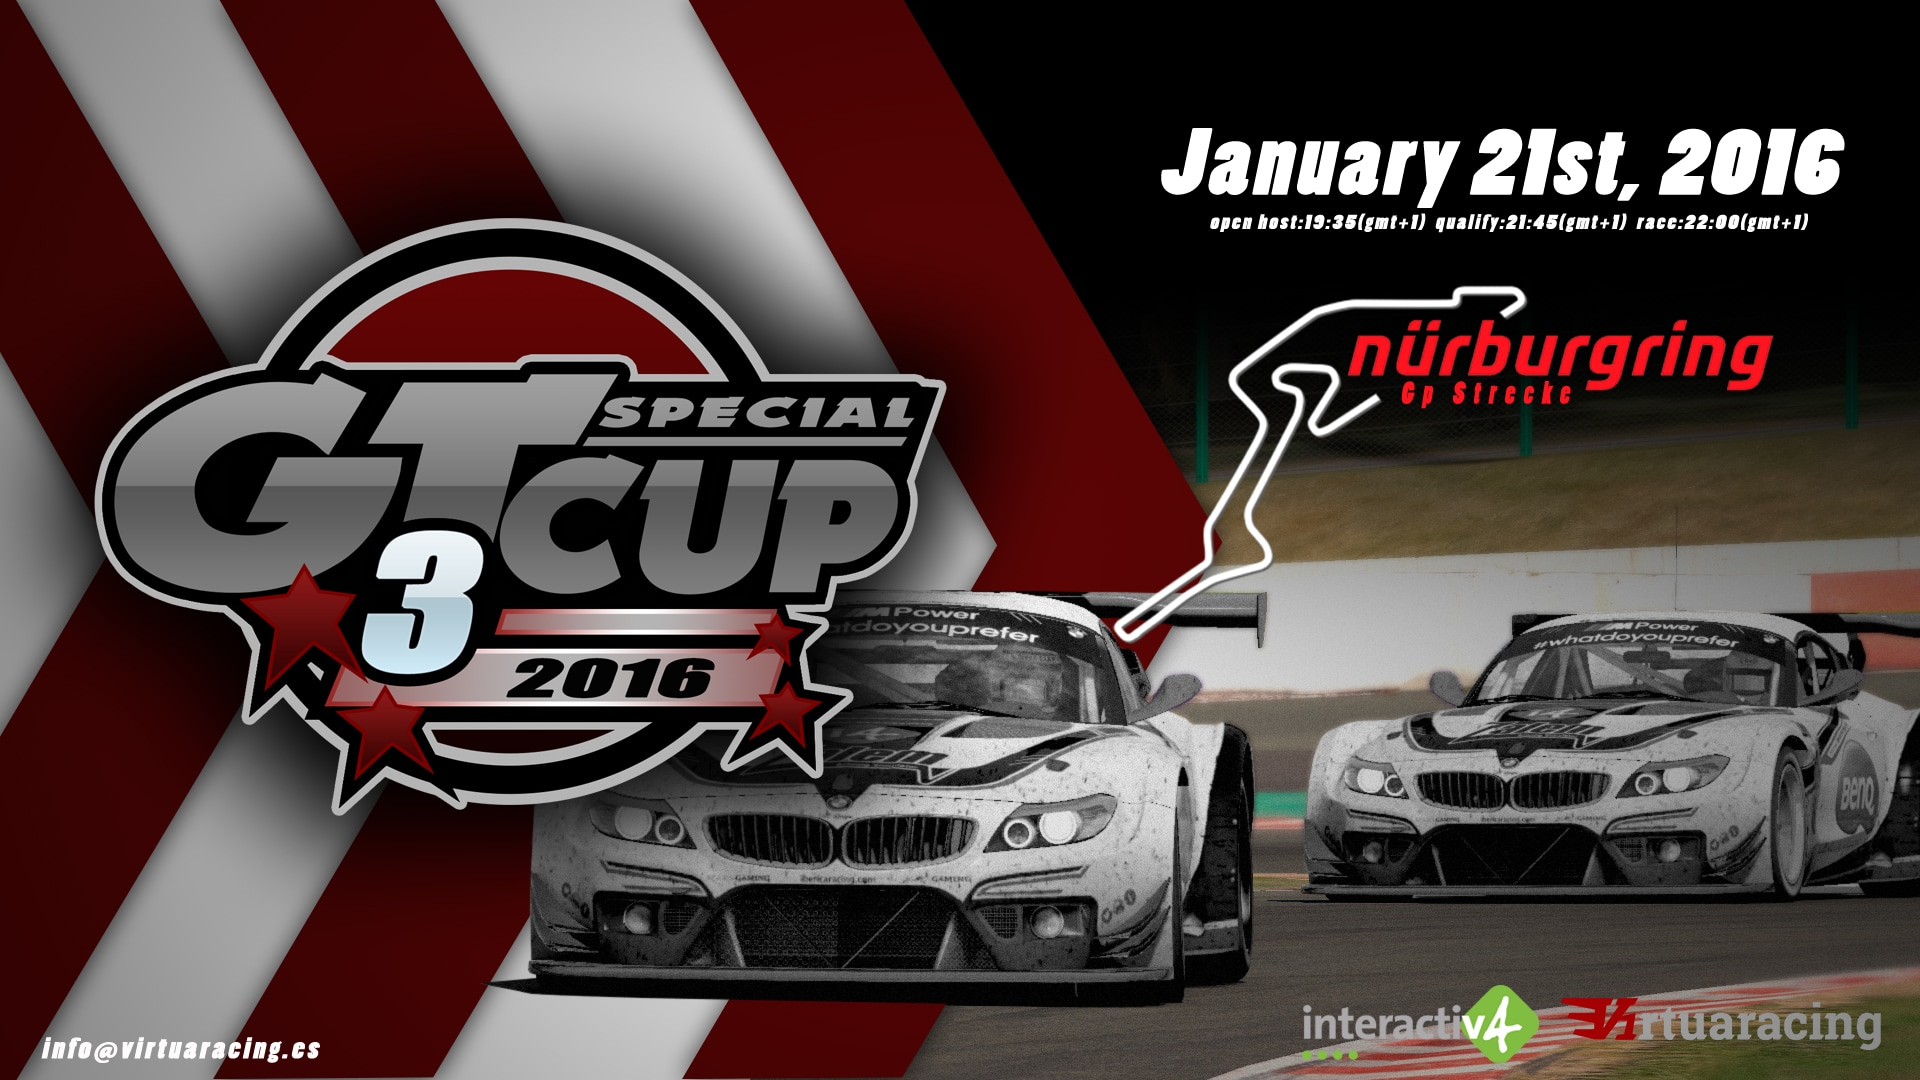 virtuaracing-gt3-special-cup-2016